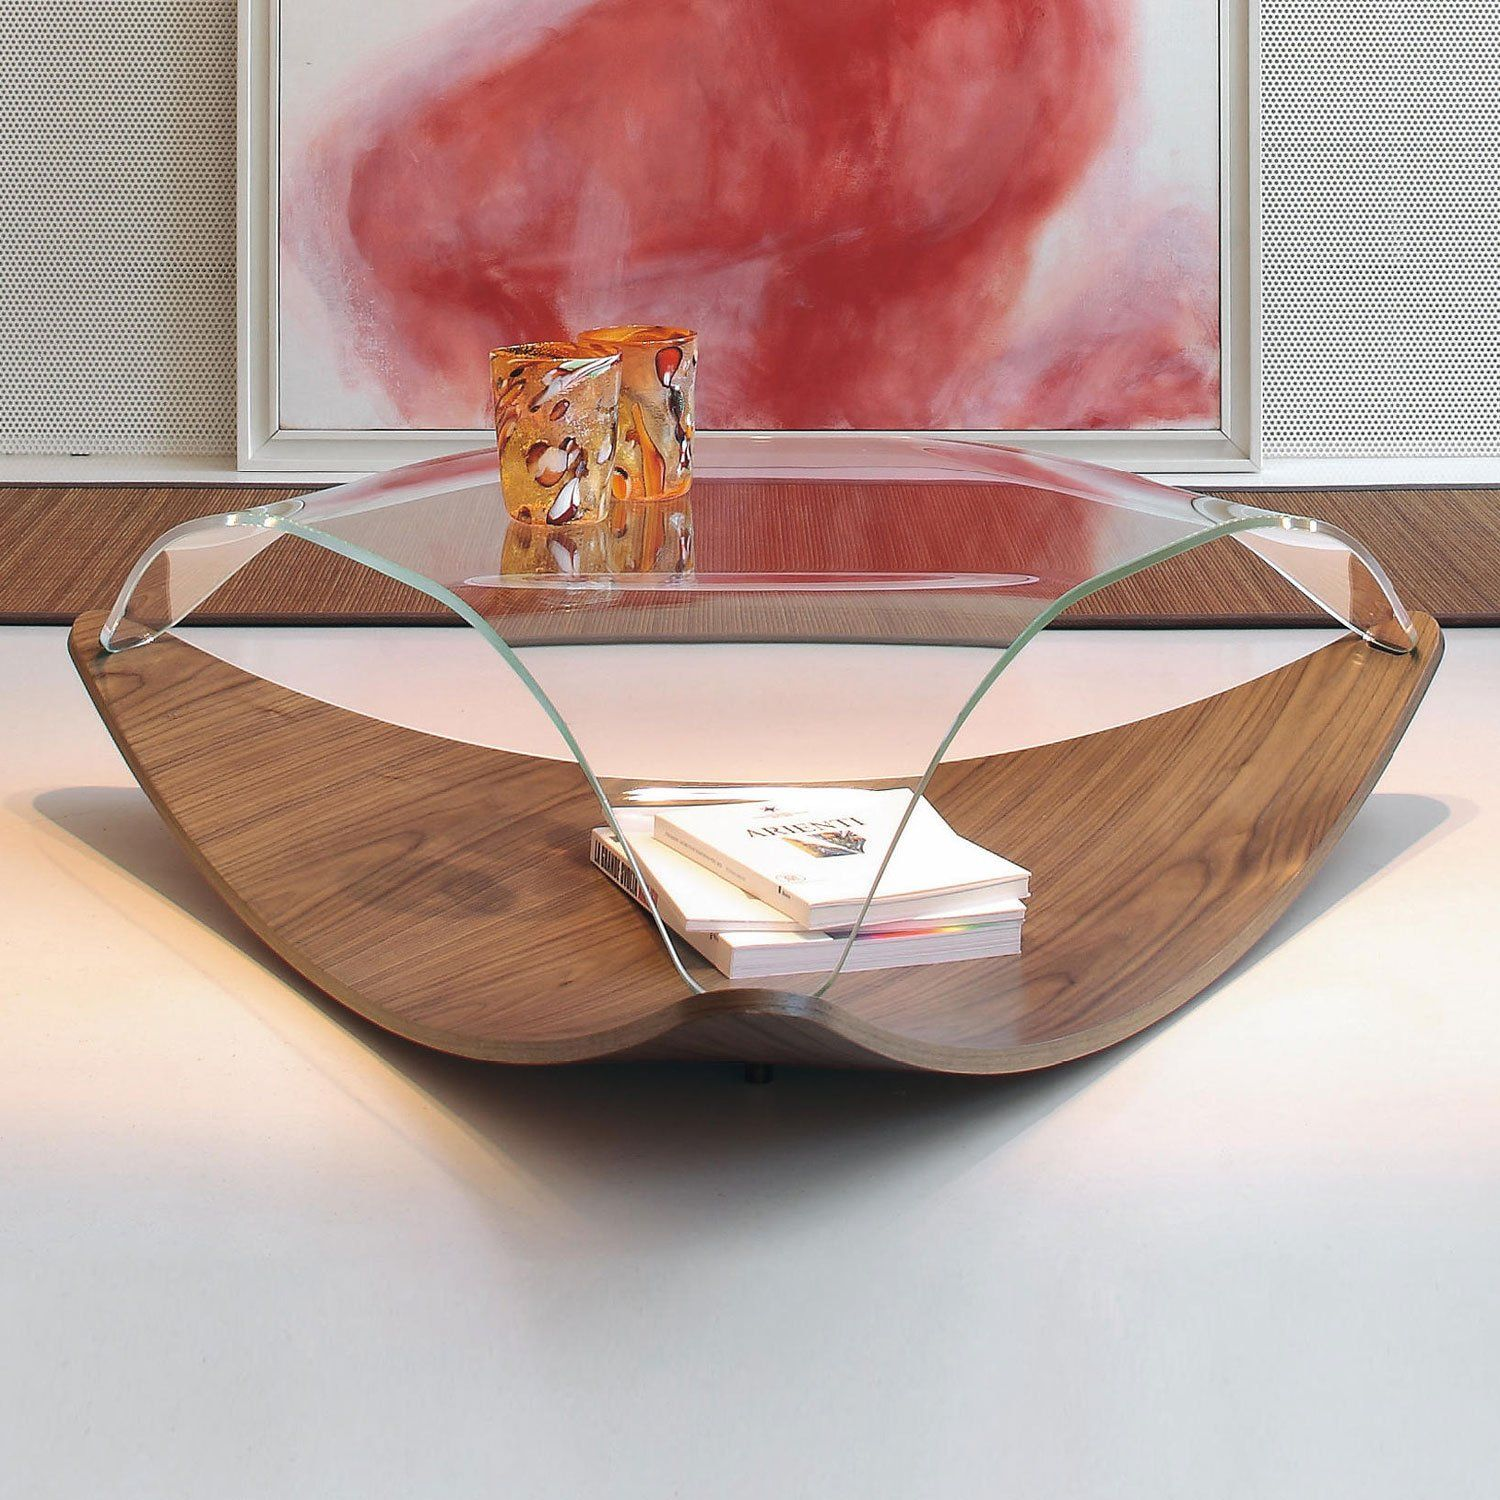 Quiet Coffee Table In 2021 Unique Coffee Table Coffee Table Glass Top Coffee Table [ 1500 x 1500 Pixel ]